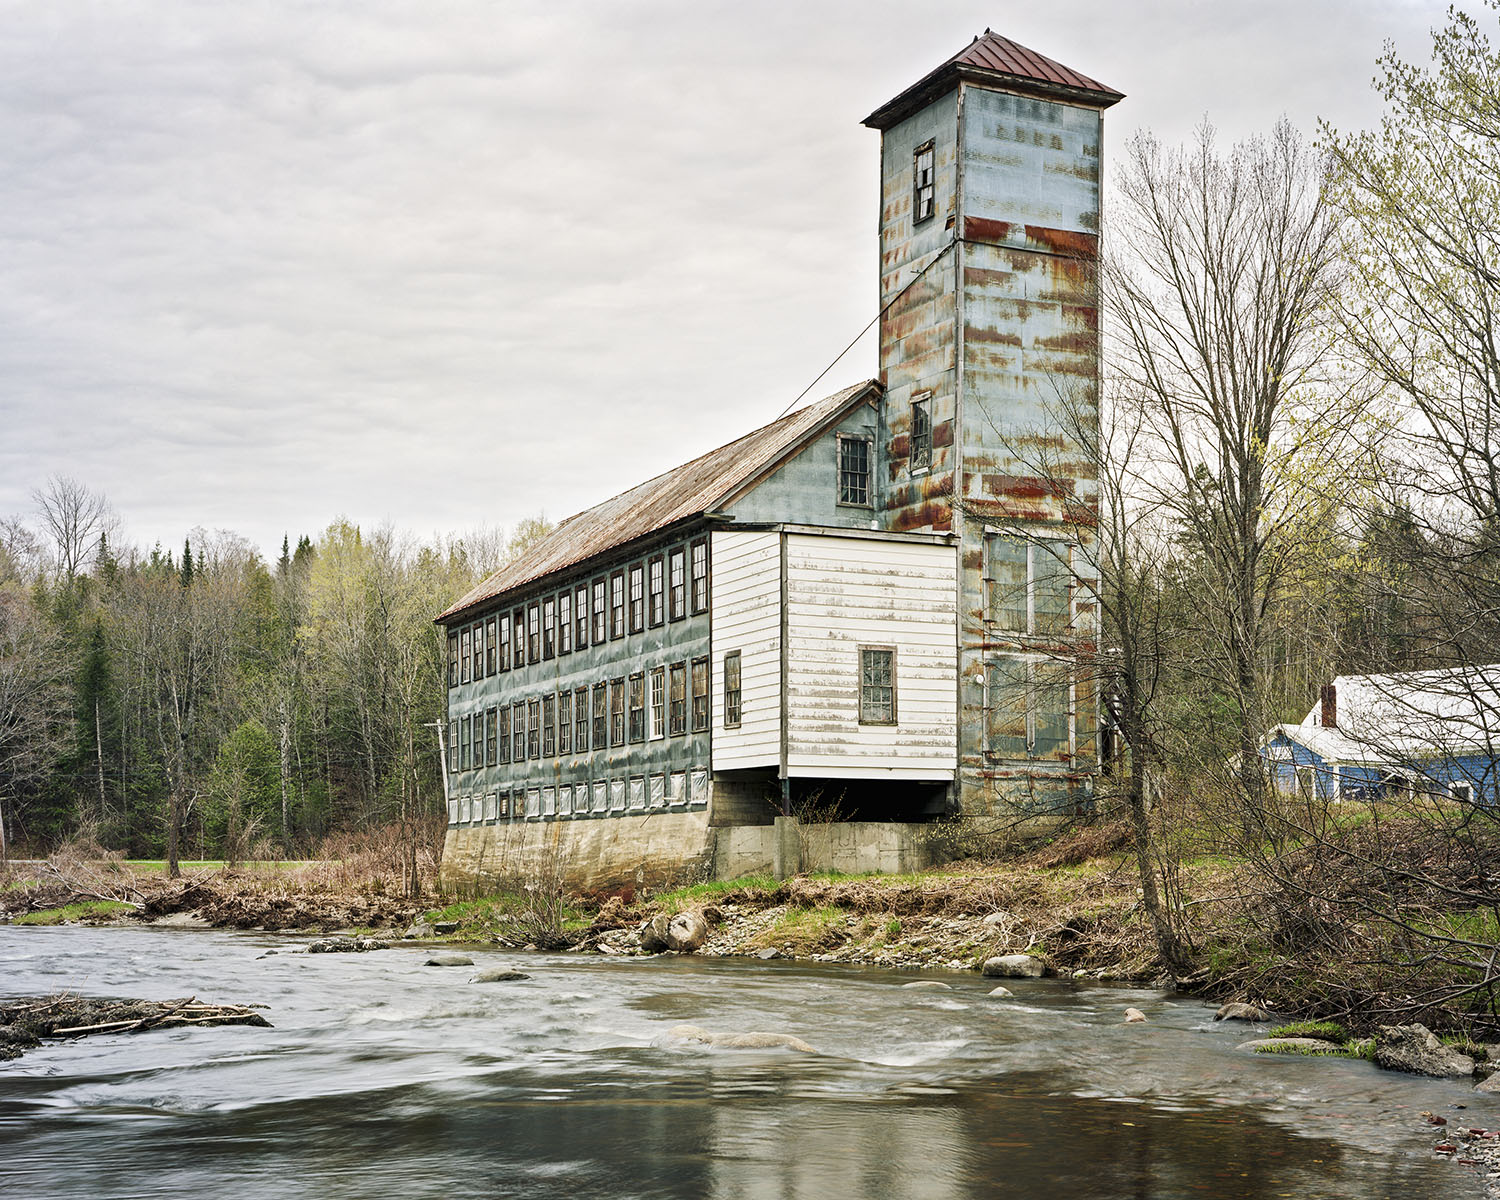 Bartlettyarns, Harmony, Maine, 2010   Christopher Payne  Archival inkjet print 7 x 9, signed and numbered edition of 5 $150